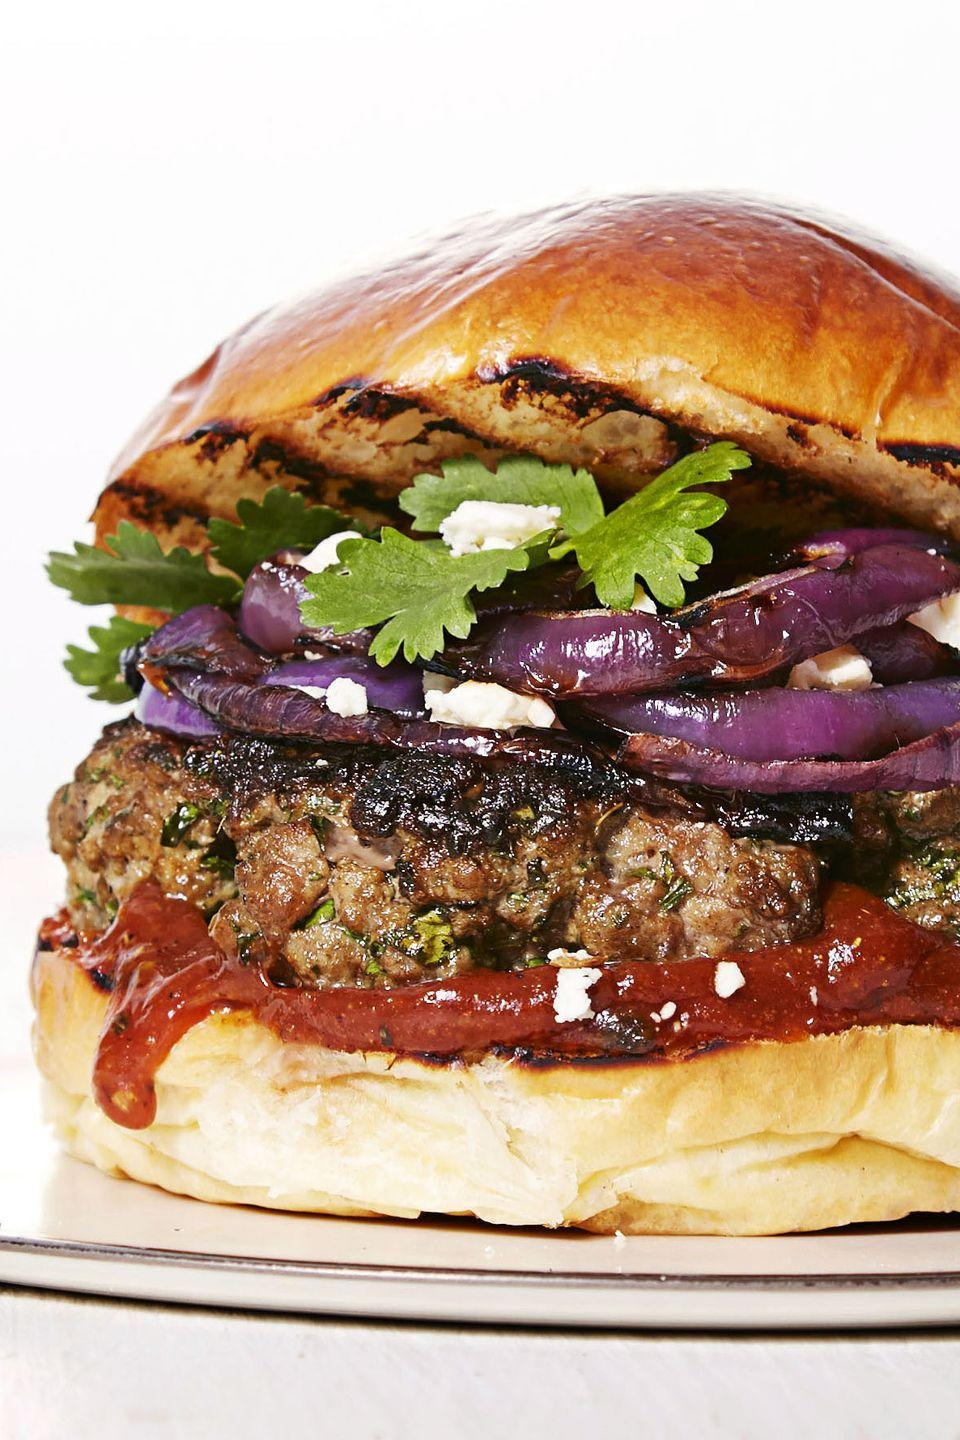 """<p>This patty is packed with cilantro, coriander, and garlic — and stacked with onions, curried ketchup, and feta cheese. Need we say more?</p><p><a href=""""https://www.goodhousekeeping.com/food-recipes/easy/a33404/mediterranean-spiced-burgers/"""" rel=""""nofollow noopener"""" target=""""_blank"""" data-ylk=""""slk:Get the recipe for Mediterranean Spiced Burger »"""" class=""""link rapid-noclick-resp""""><em>Get the recipe for Mediterranean Spiced Burger »</em></a></p>"""